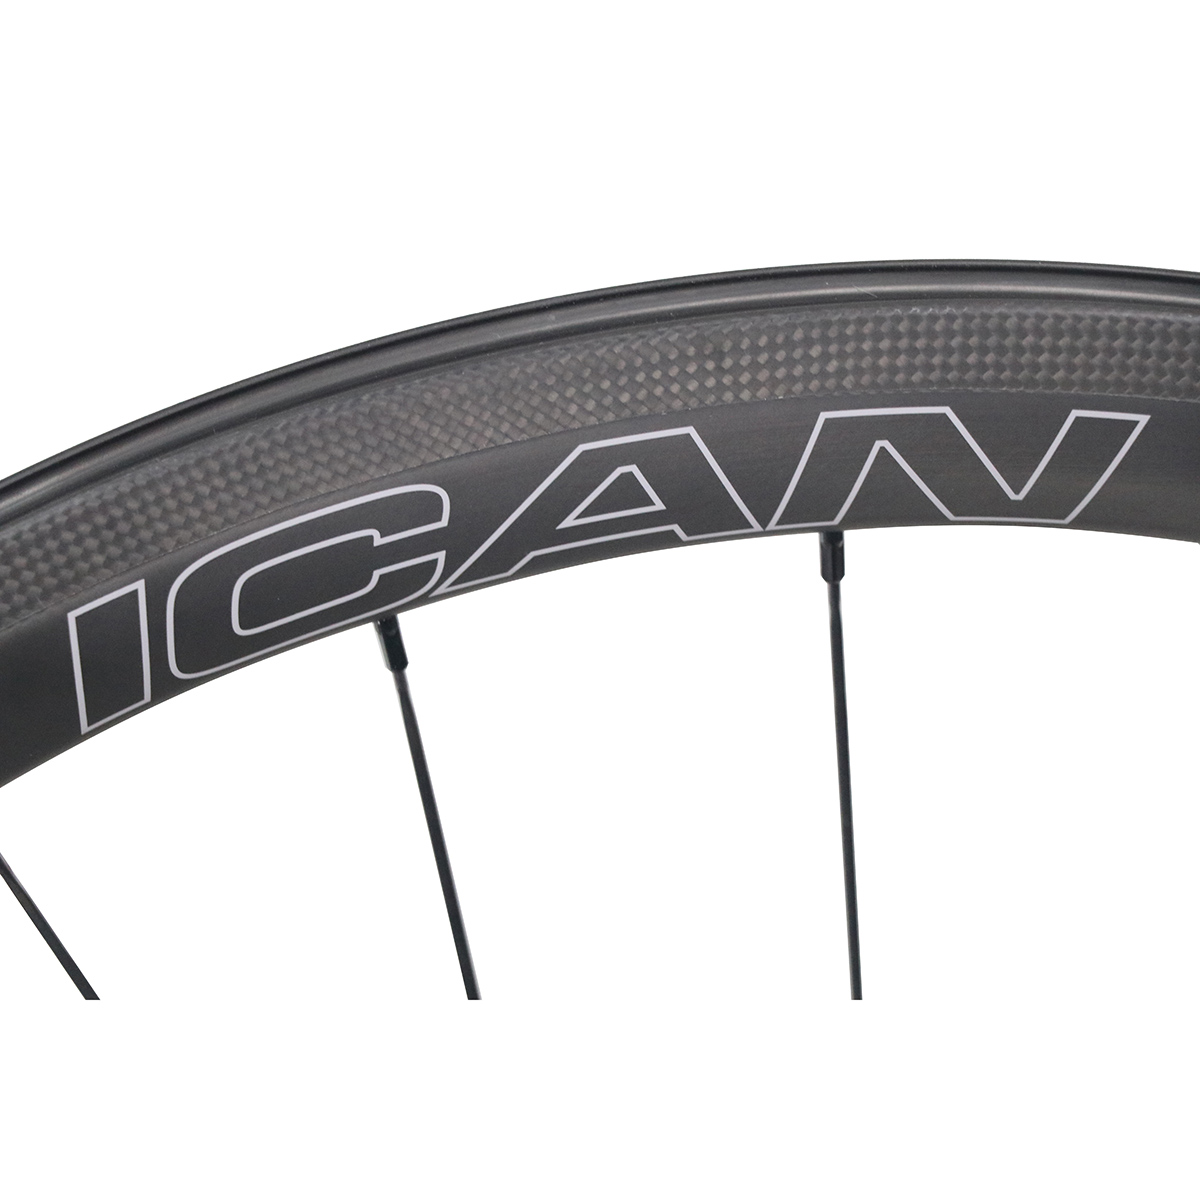 ICAN-Carbon-Fiber-Road-Bike-Wheelset-40mm-Clincher-Tubeless-Ready thumbnail 8